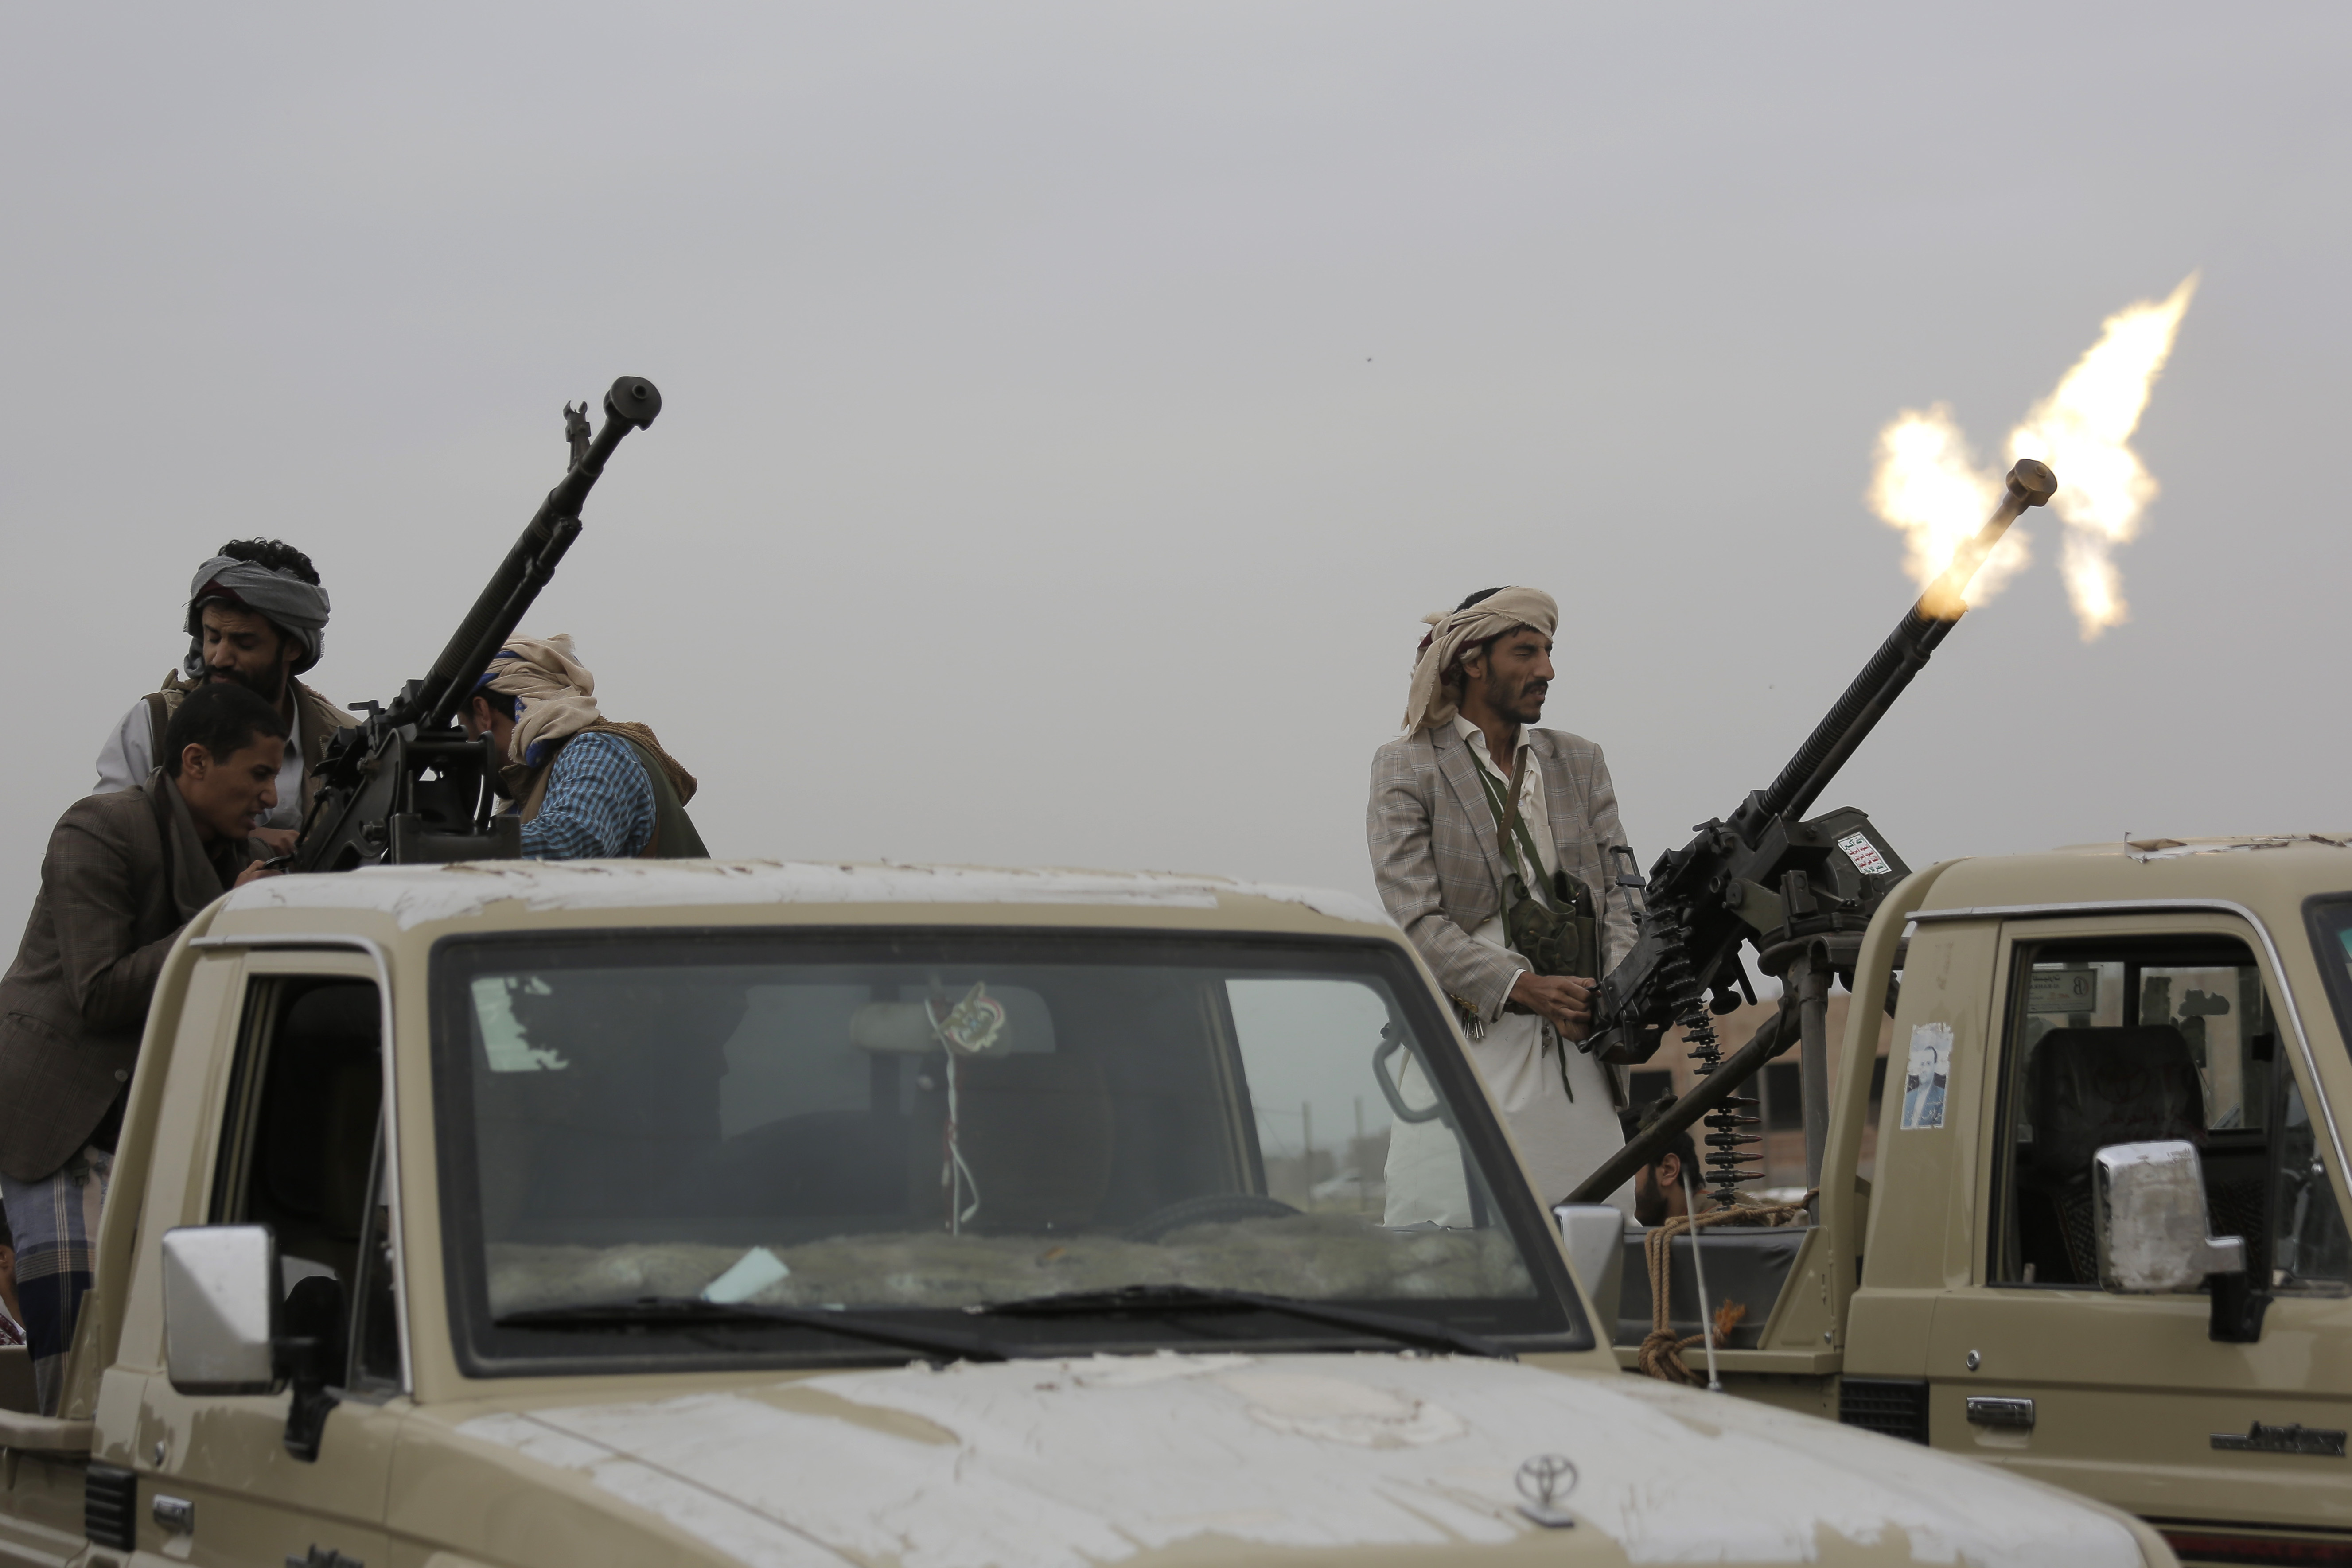 Tensions rise among Yemen allies after separatist attack